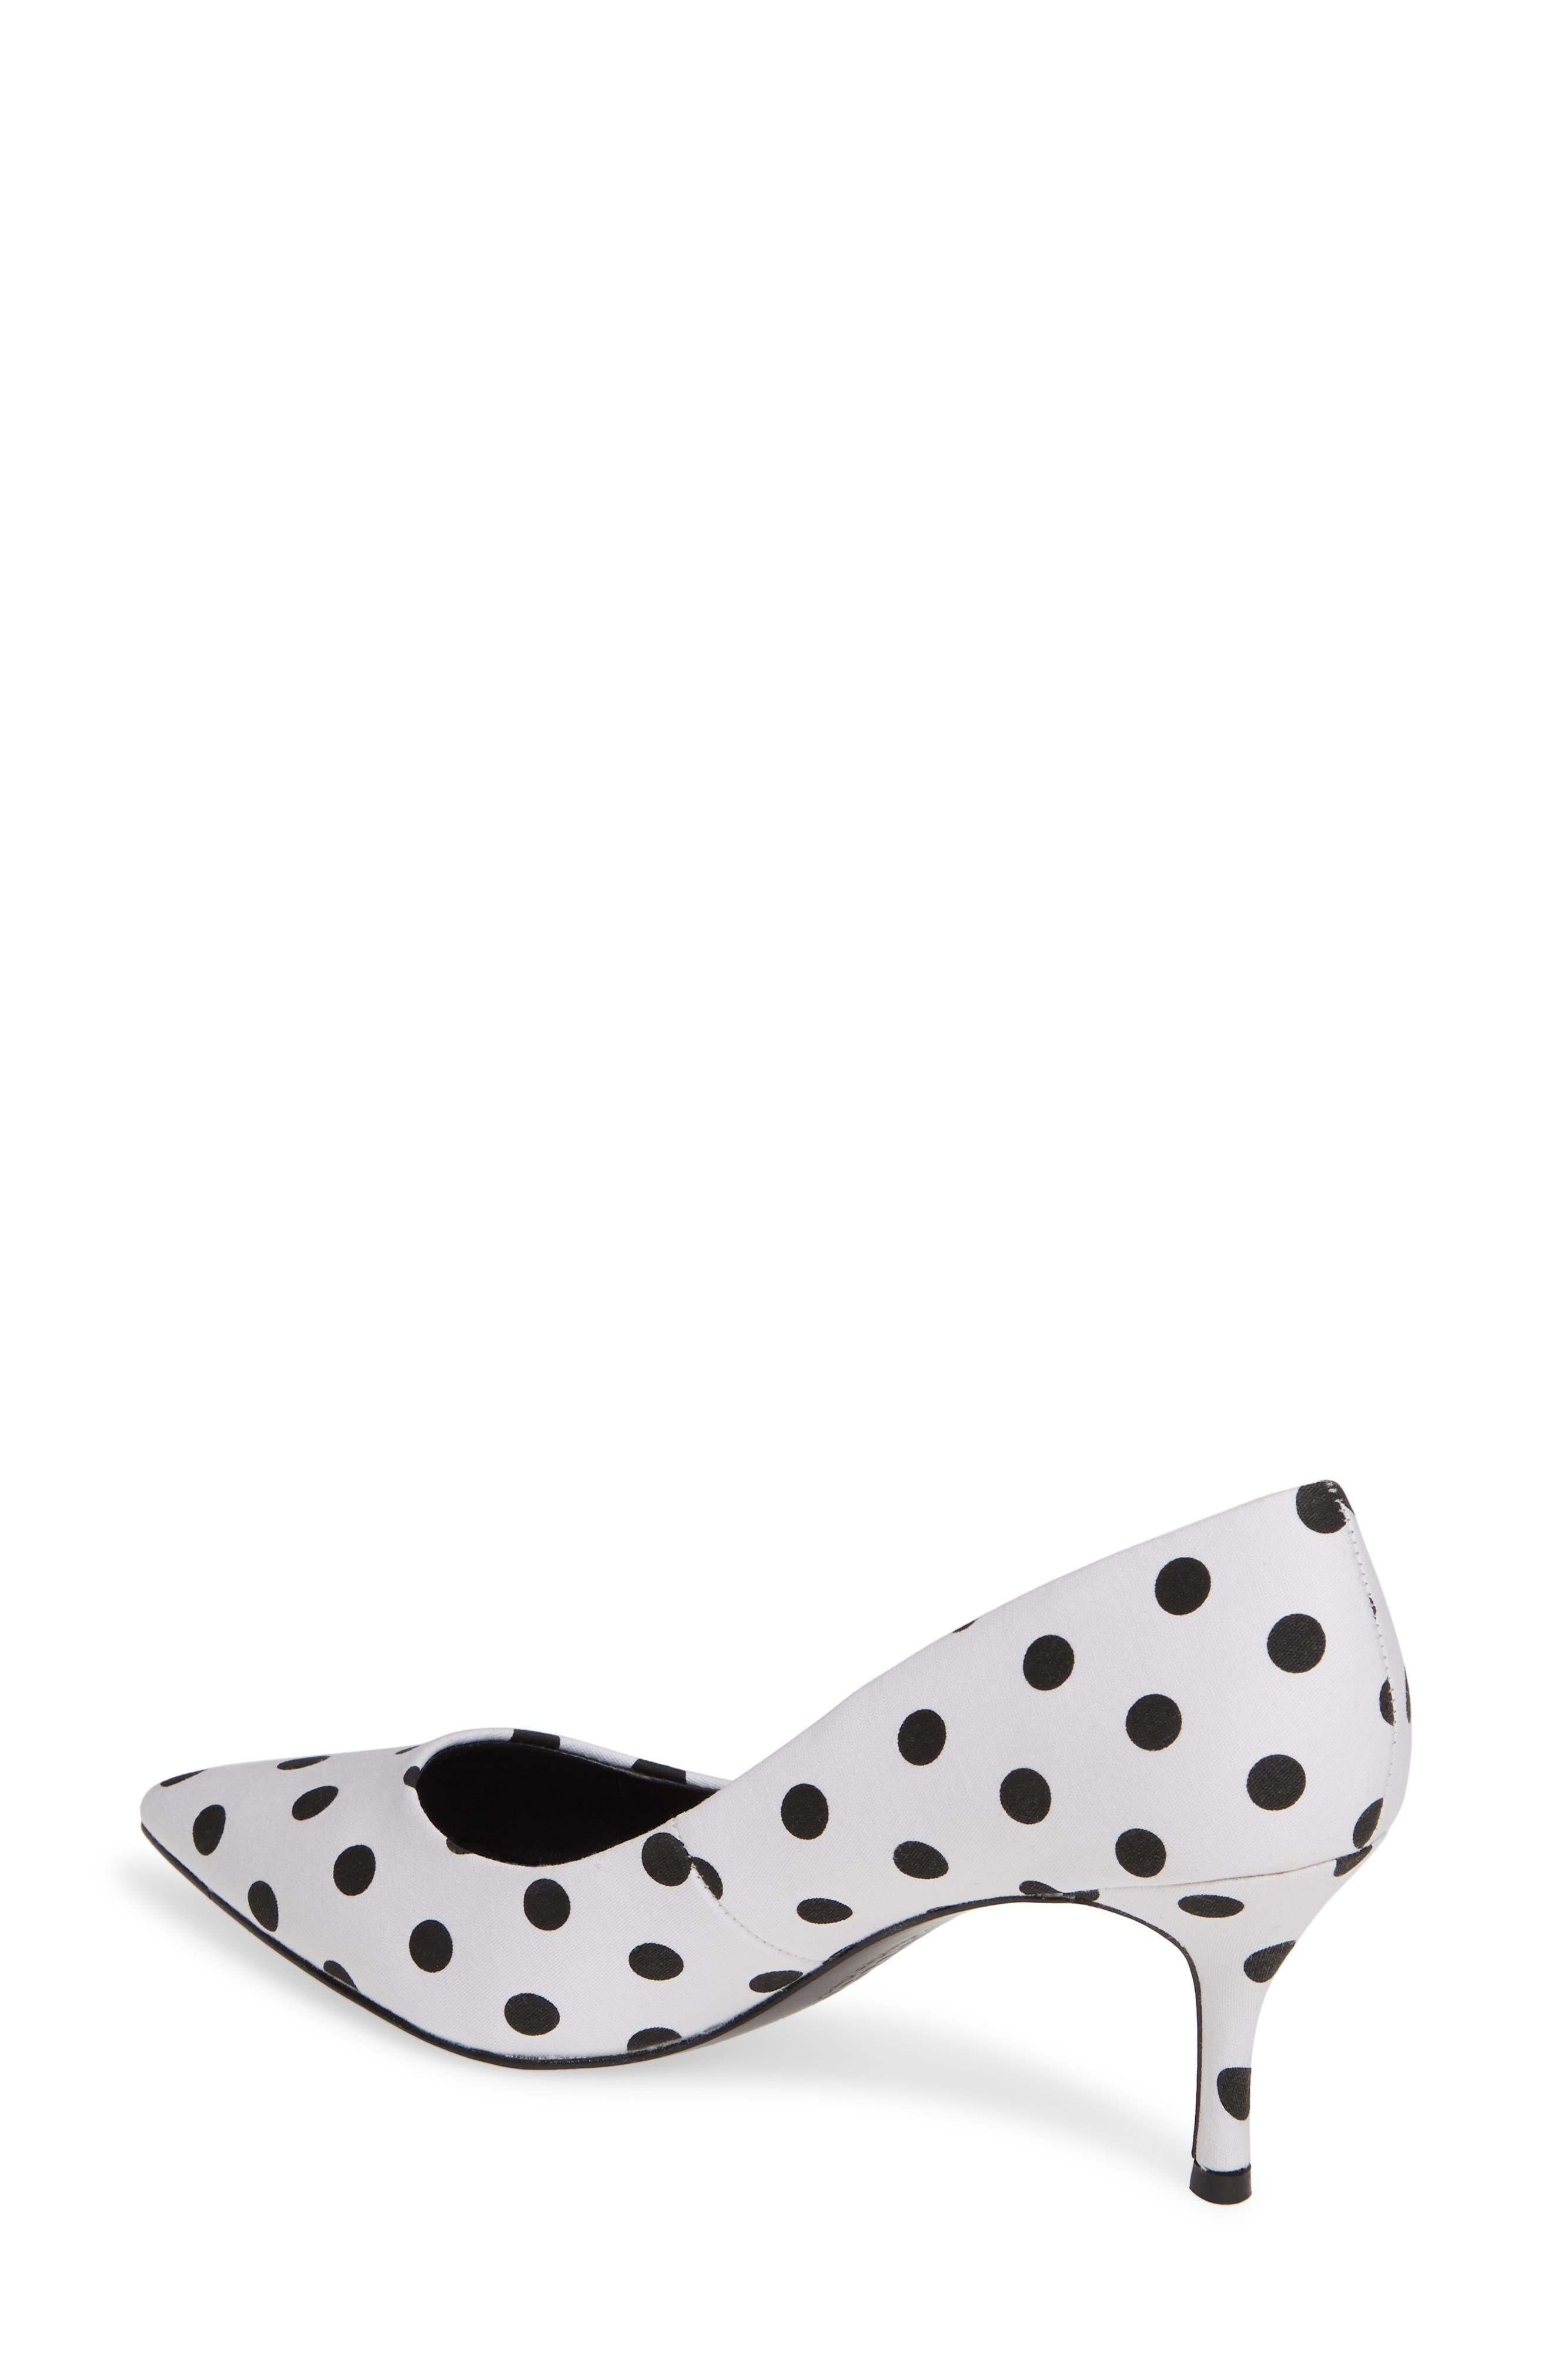 CHARLES BY CHARLES DAVID, Addie Pump, Alternate thumbnail 2, color, WHITE/ BLACK FABRIC